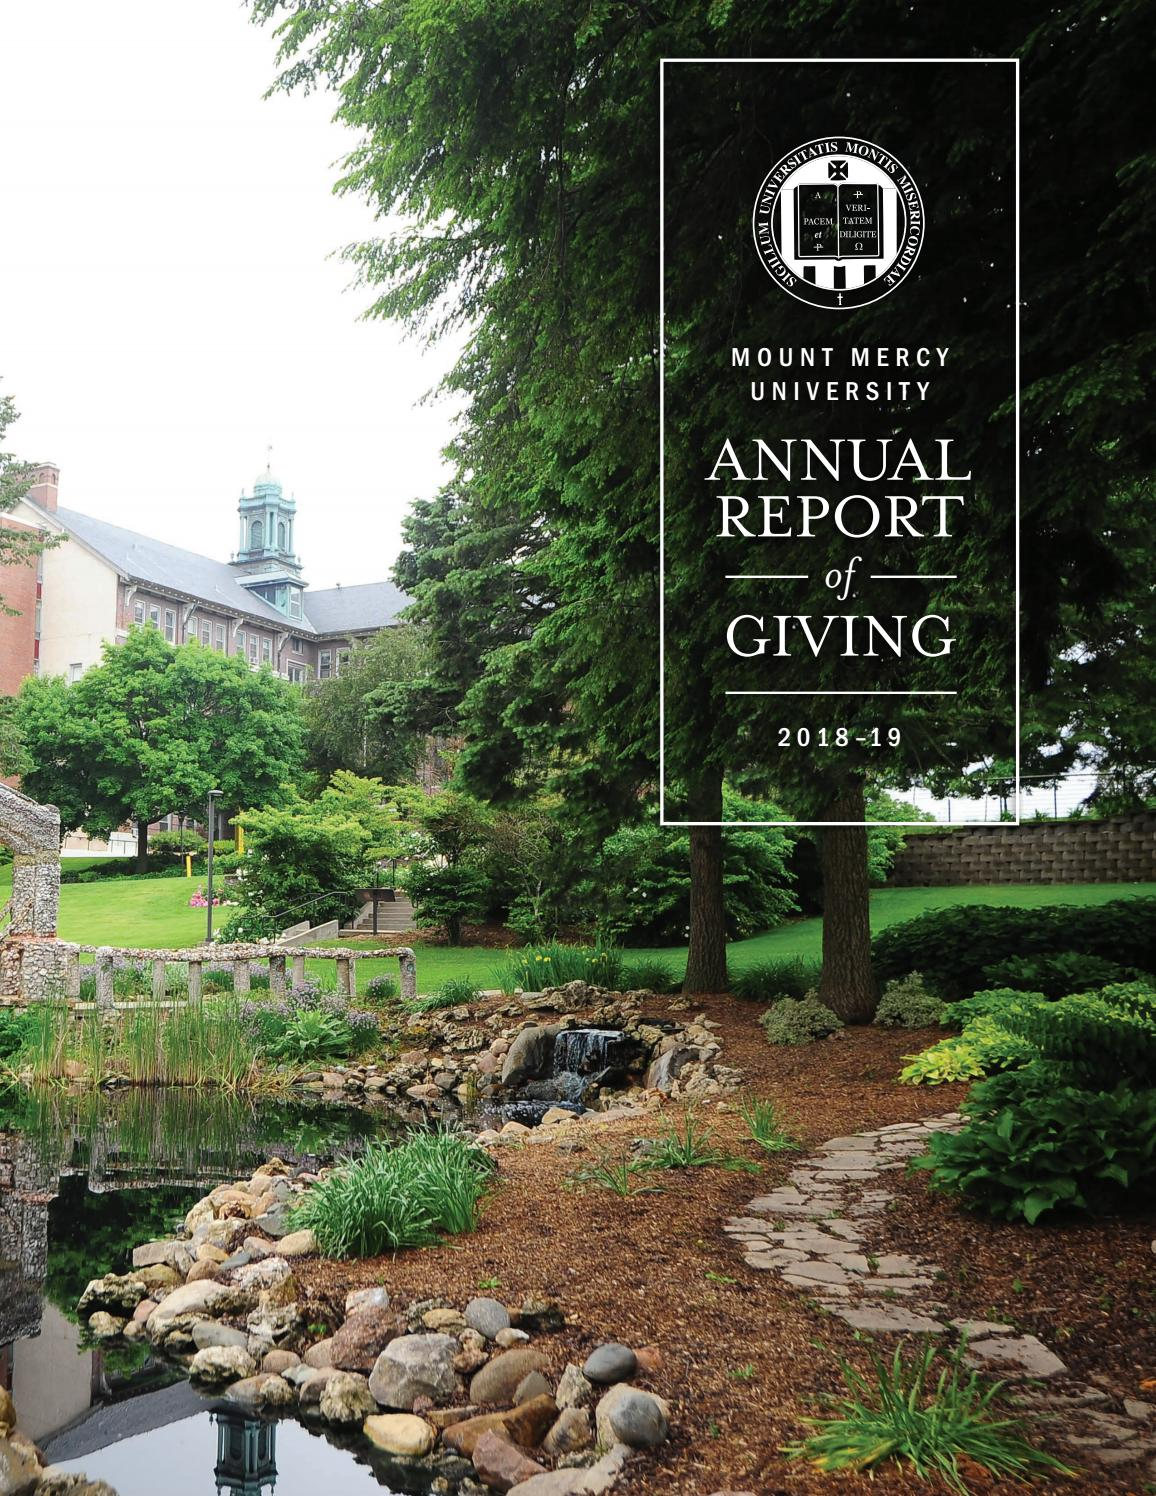 Annual Report Of Giving 2018 2019 By Mount Mercy University Issuu